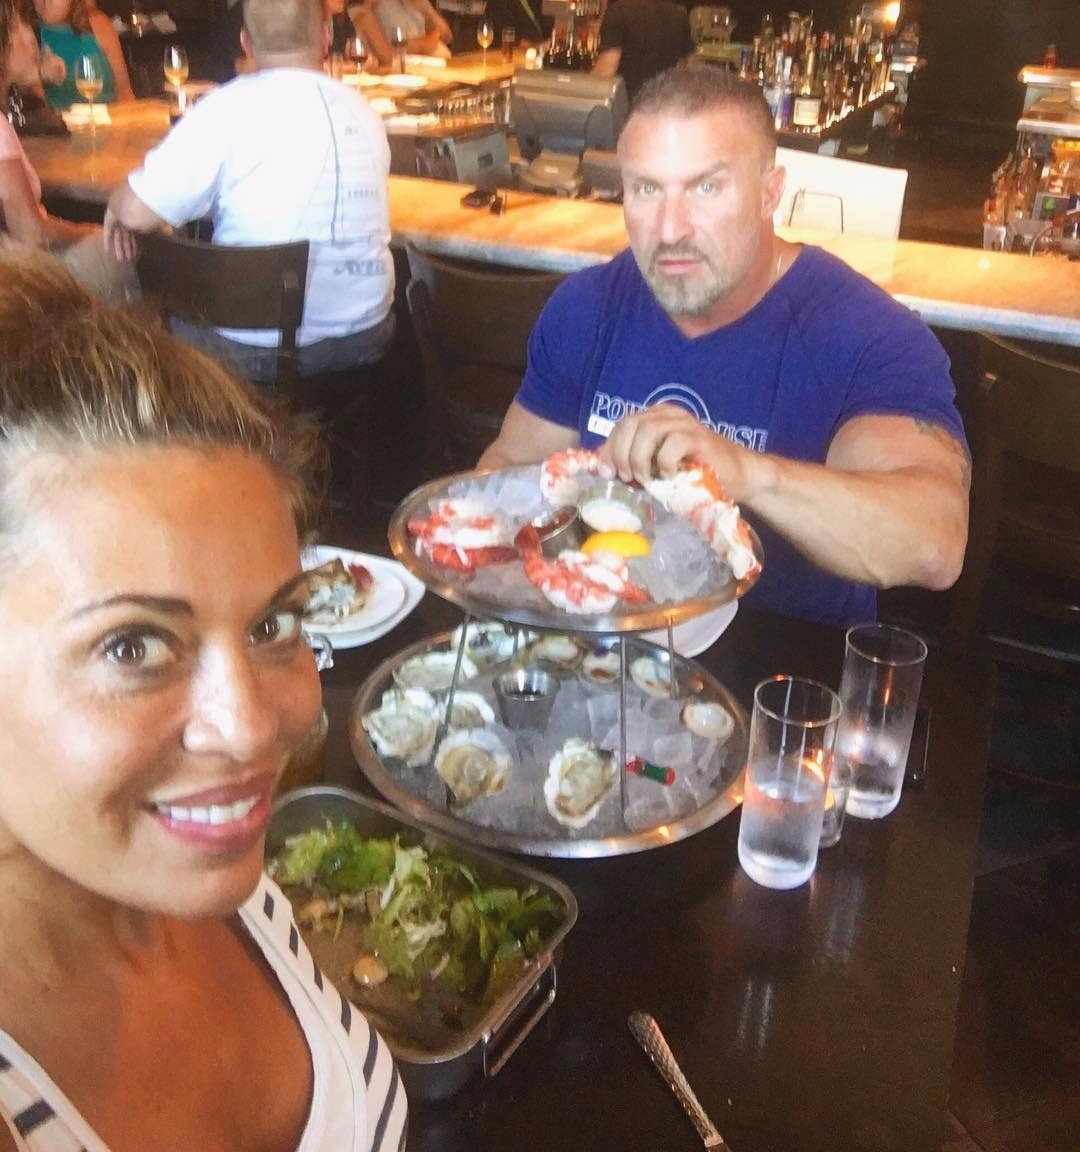 Dolores Catania is taking a selfie with her ex-husband Frank Catania. They are dining at a restaurant.